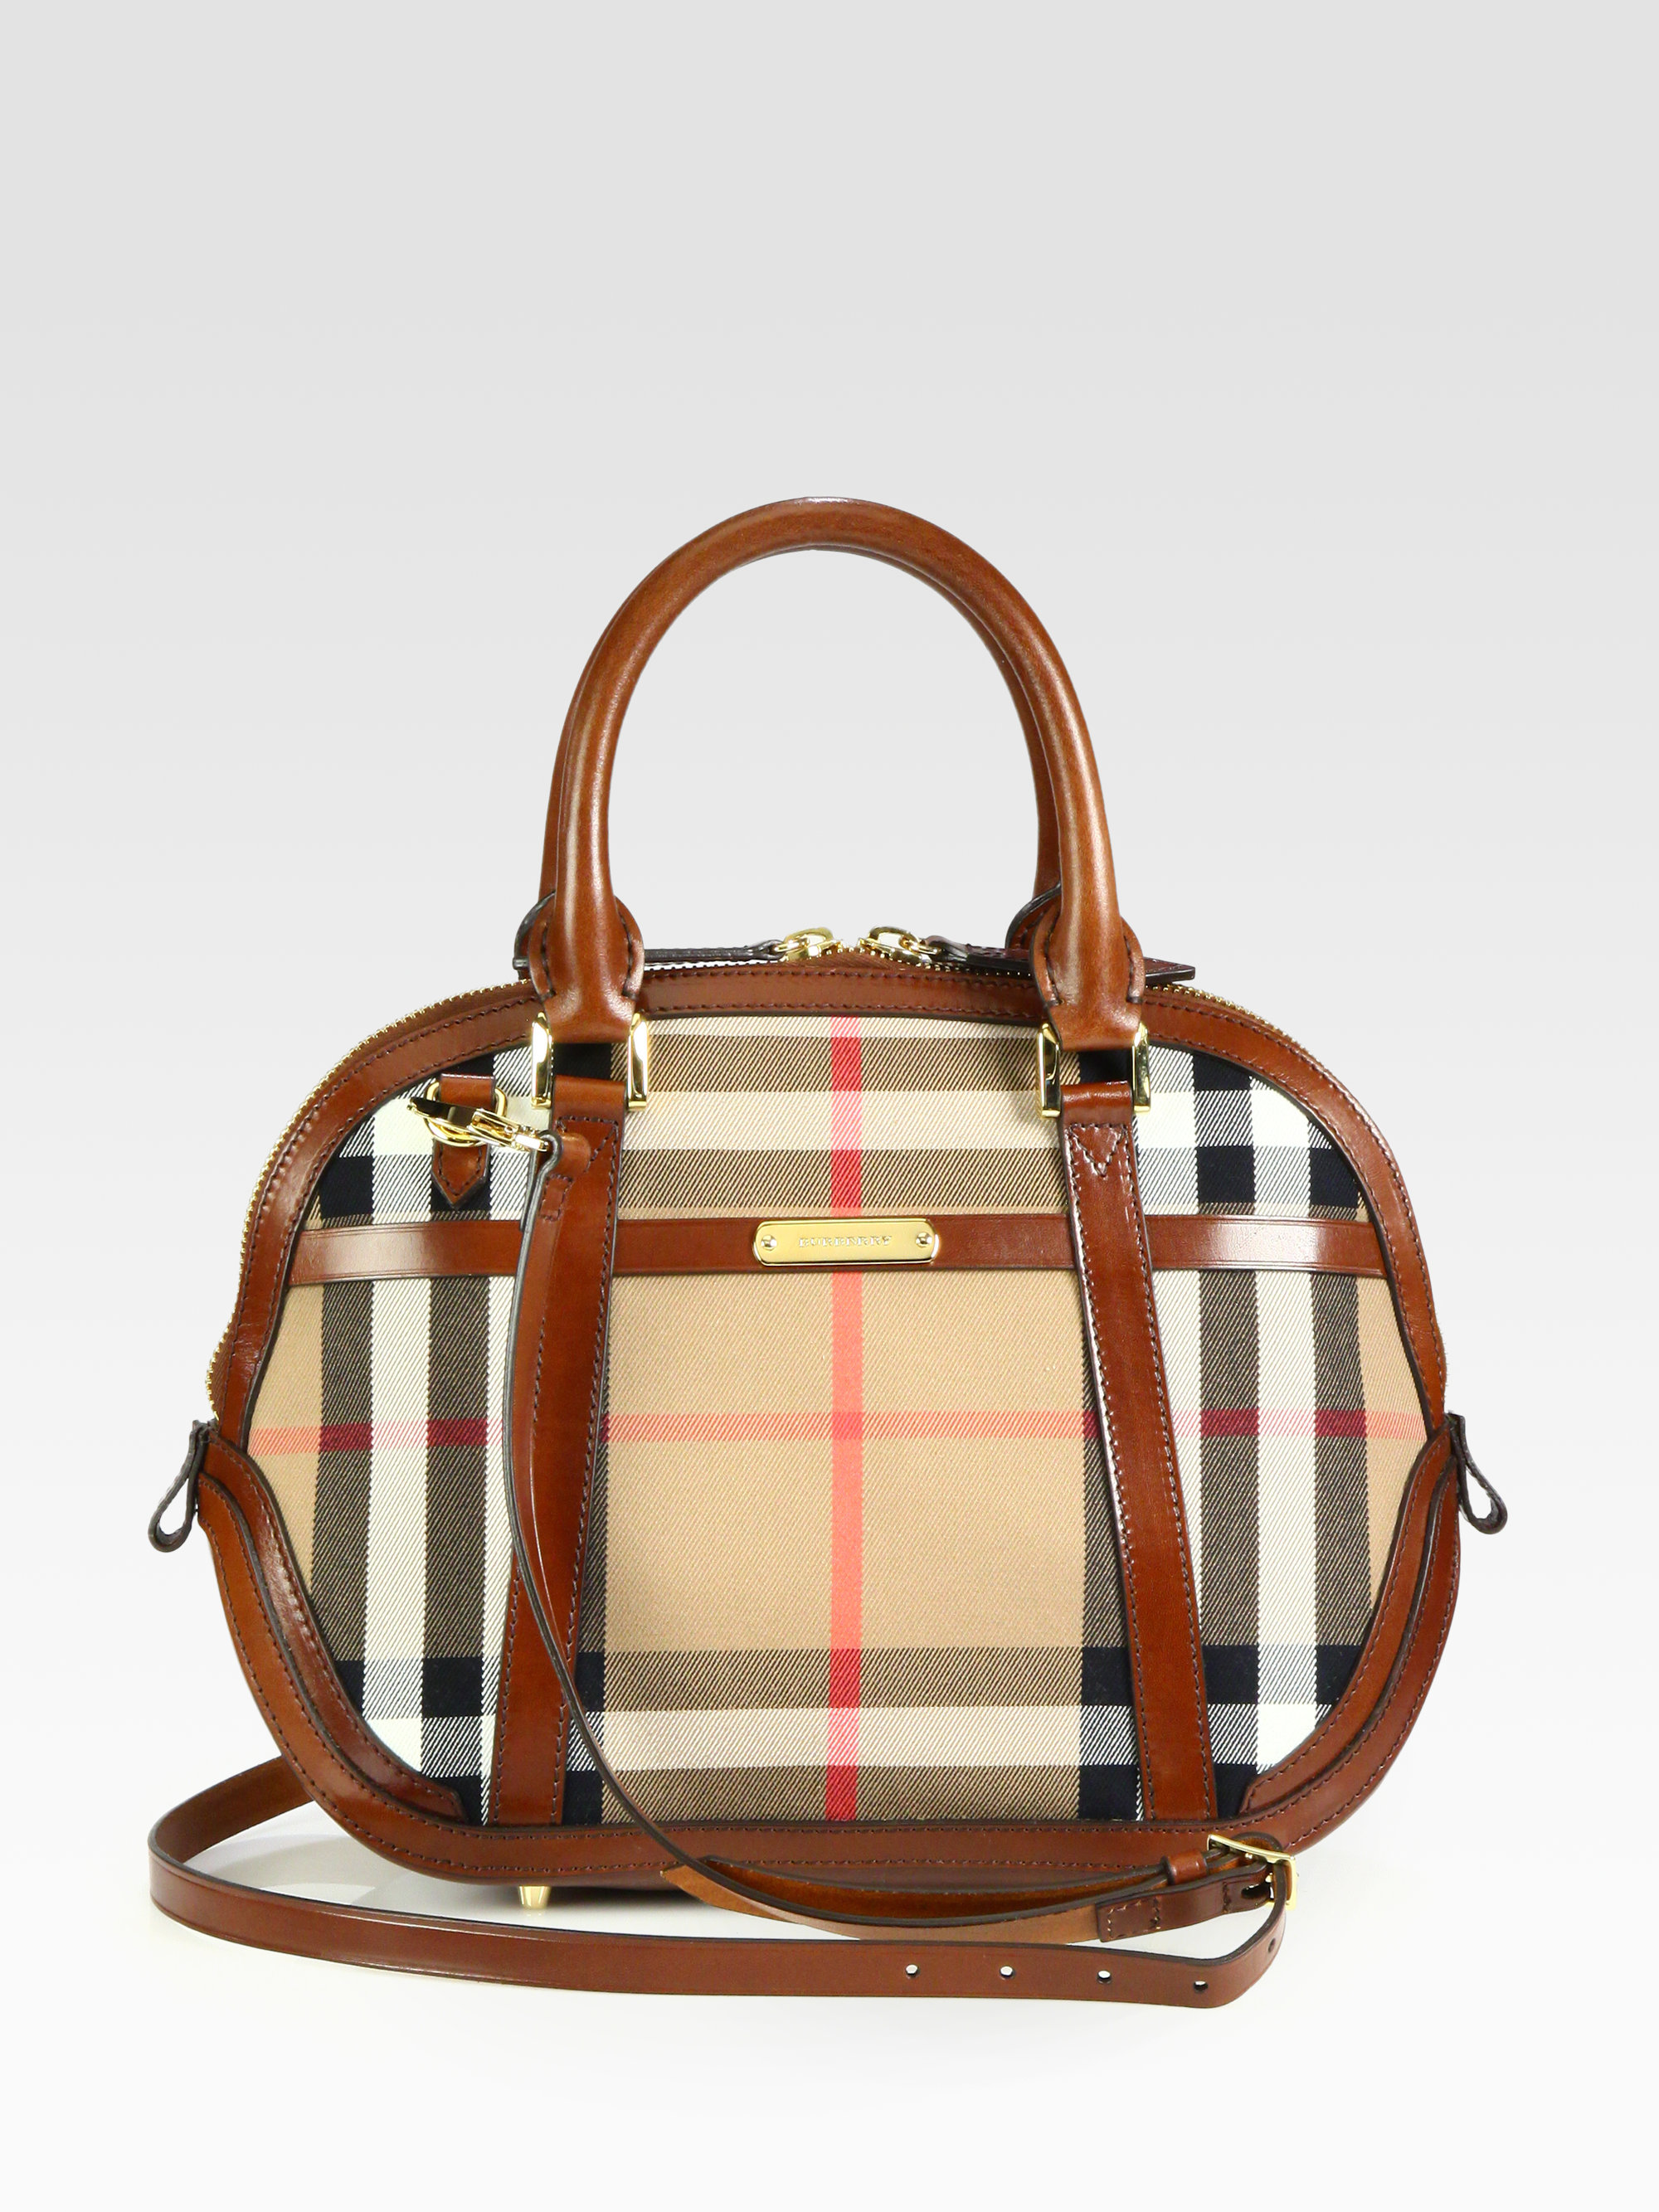 Lyst - Burberry Orchard Satchel in Brown 89f267cb06aff